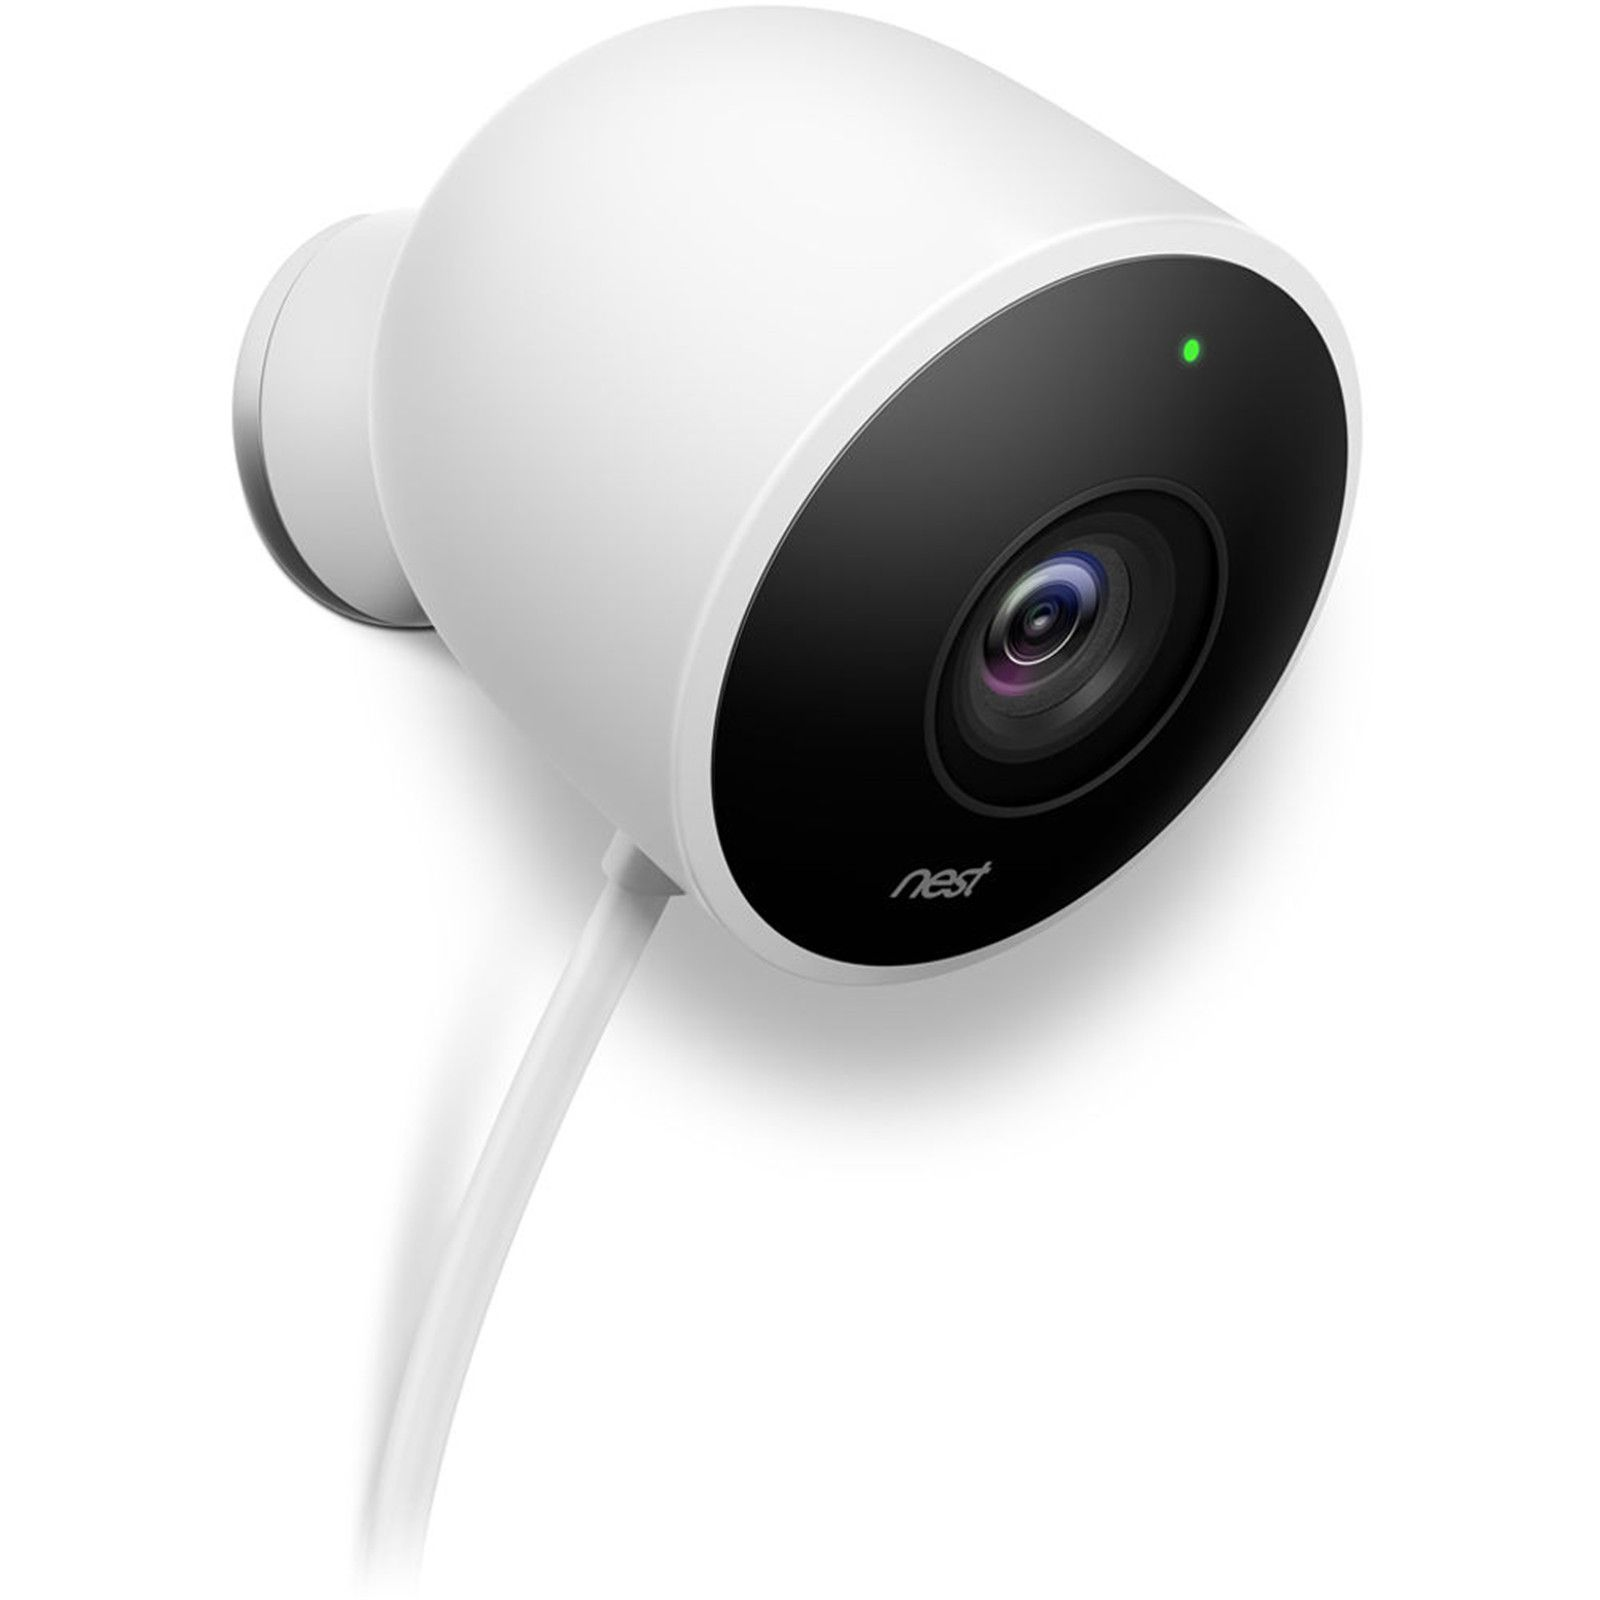 Shop Online And Read Reviews For Nest Cam Outdoor Wi Fi Security Camera 1080p H 264 130 Viewing Angle Night Vision Two Way Audio Nc2 Security Cameras For Home Wireless Security Cameras Best Security Cameras